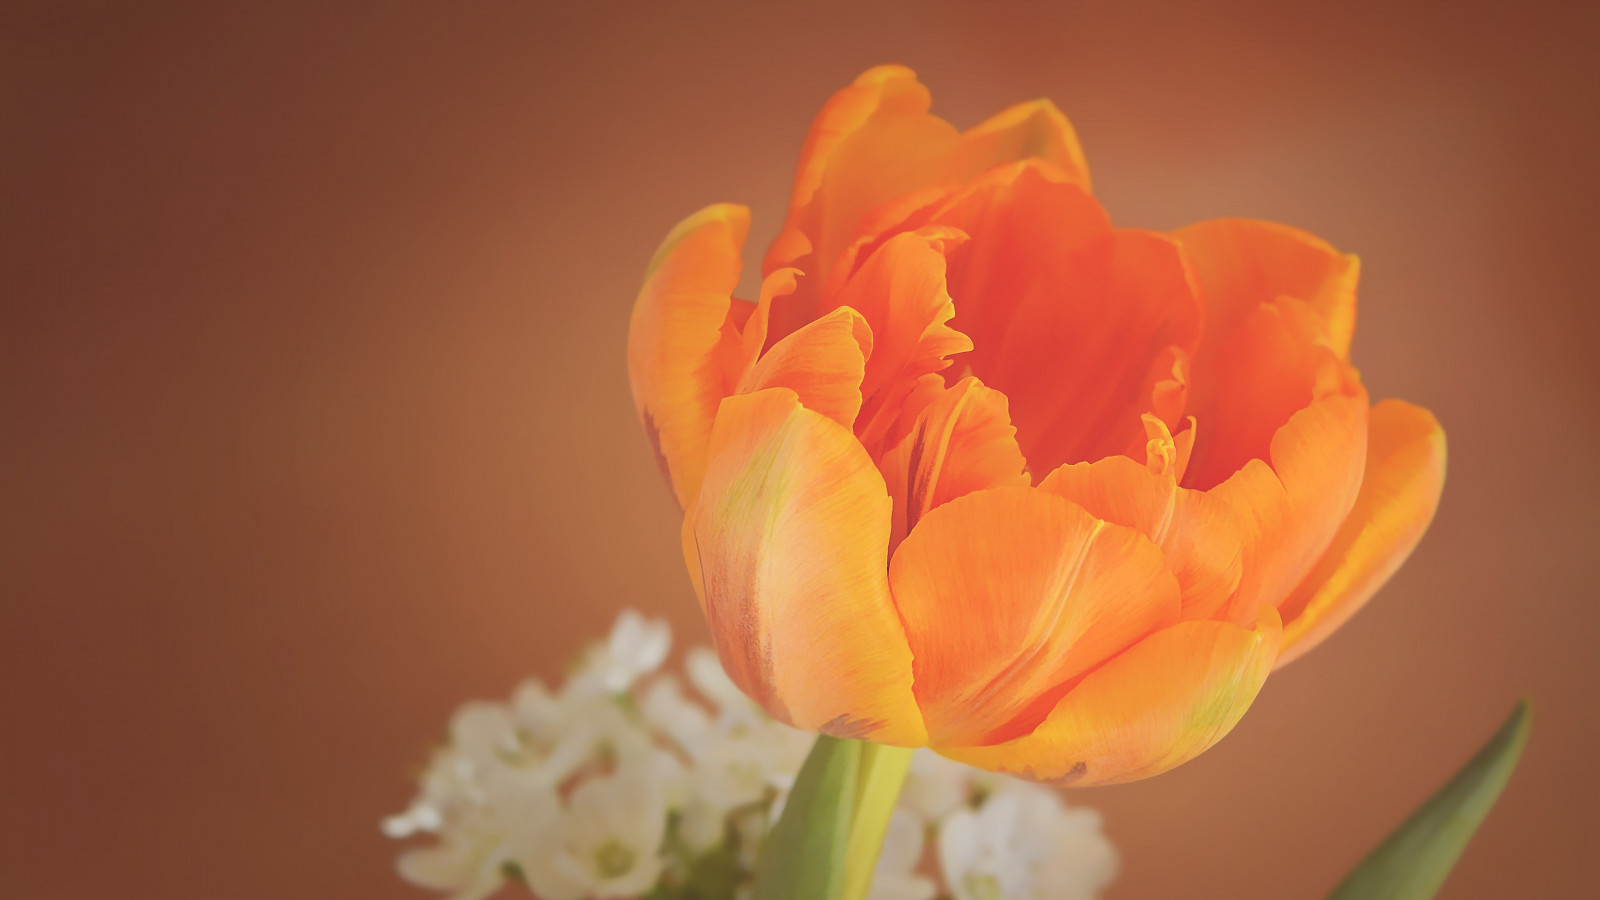 Orange tulip wallpaper 1600x900